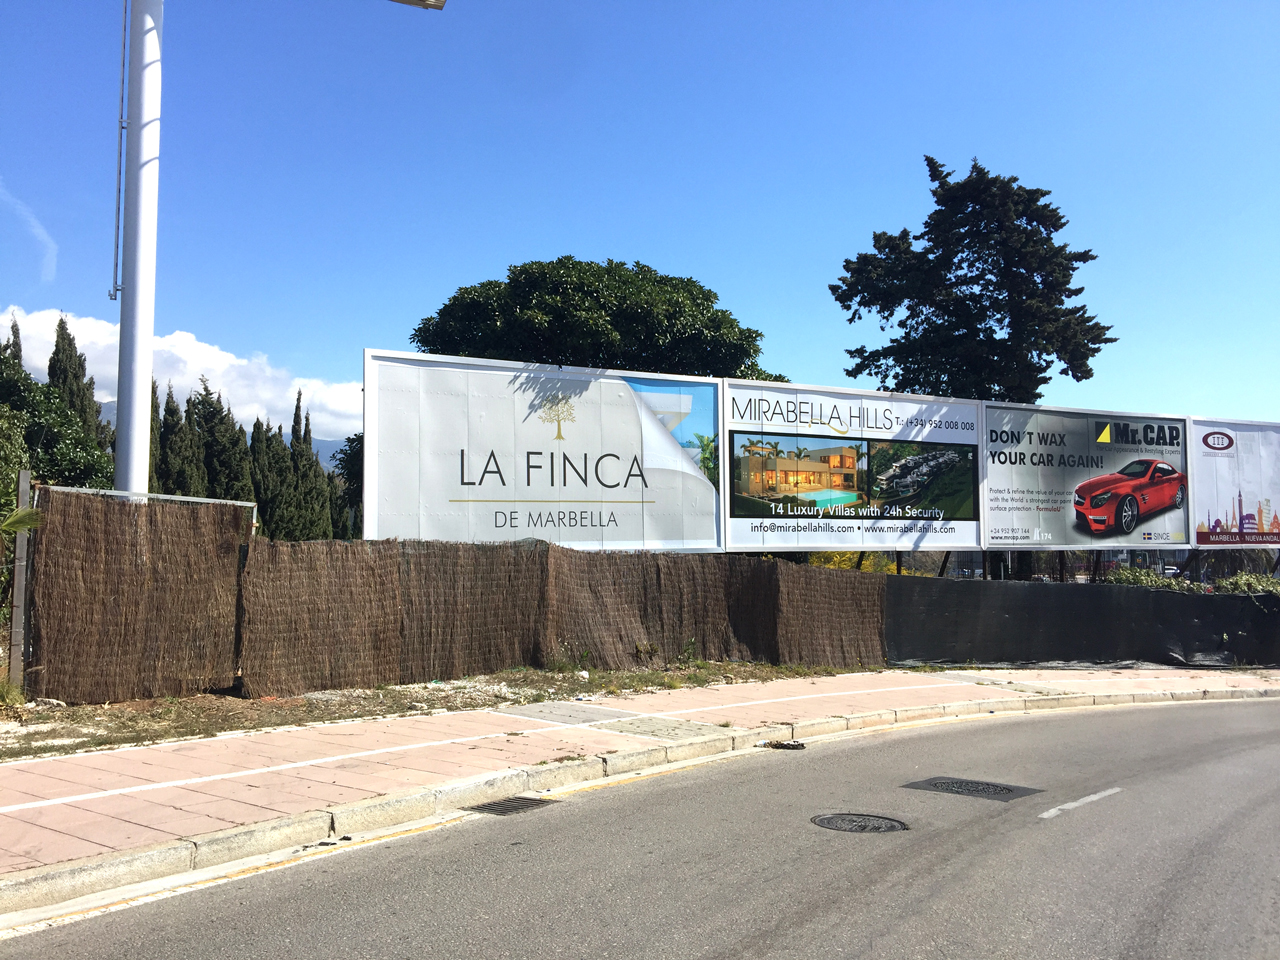 Advertising billboard in Puerto Banús for La Finca de Marbella